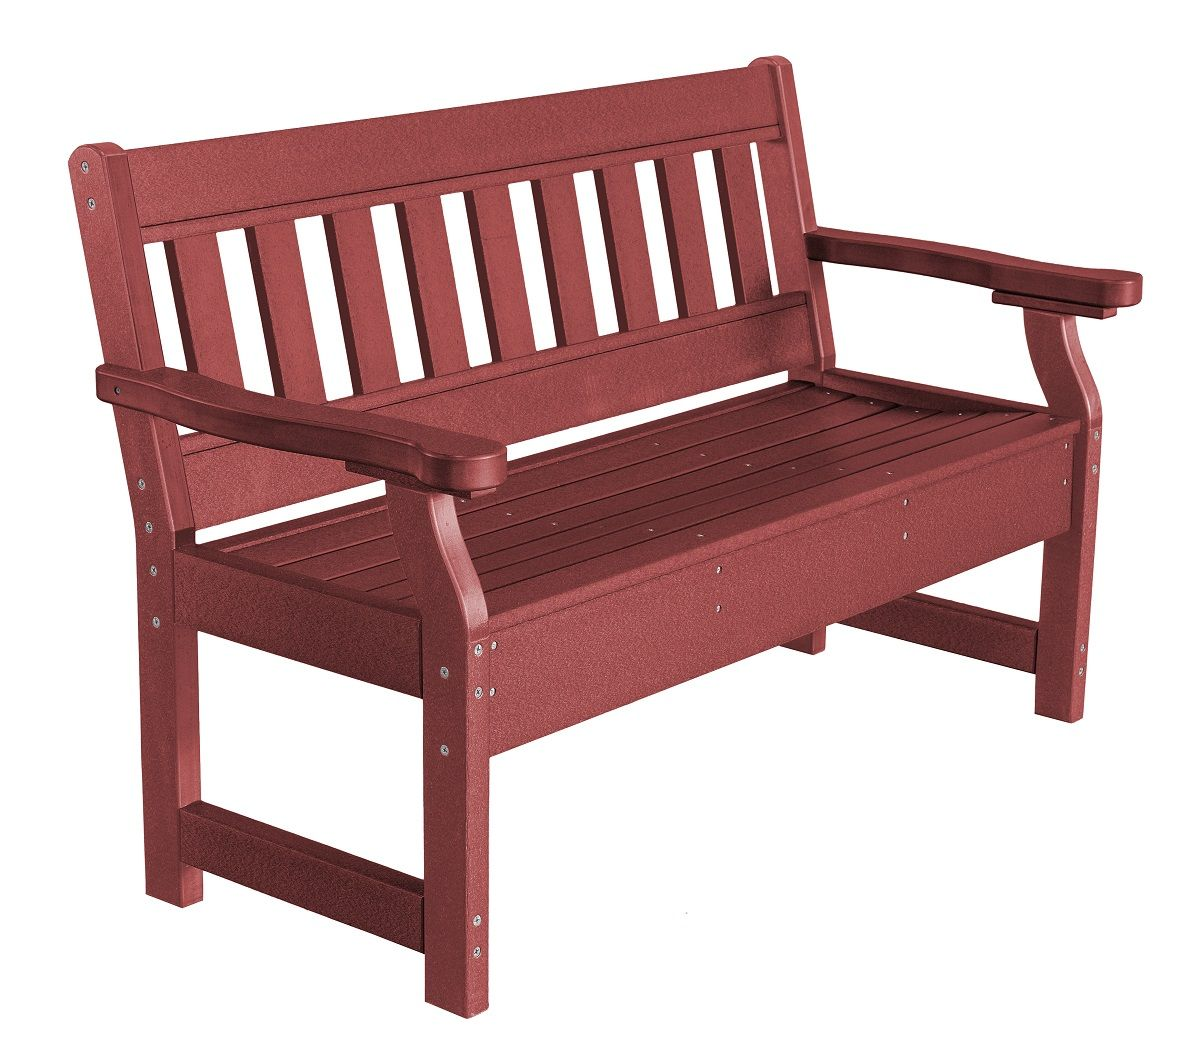 Cherry Wood Aden Garden Bench